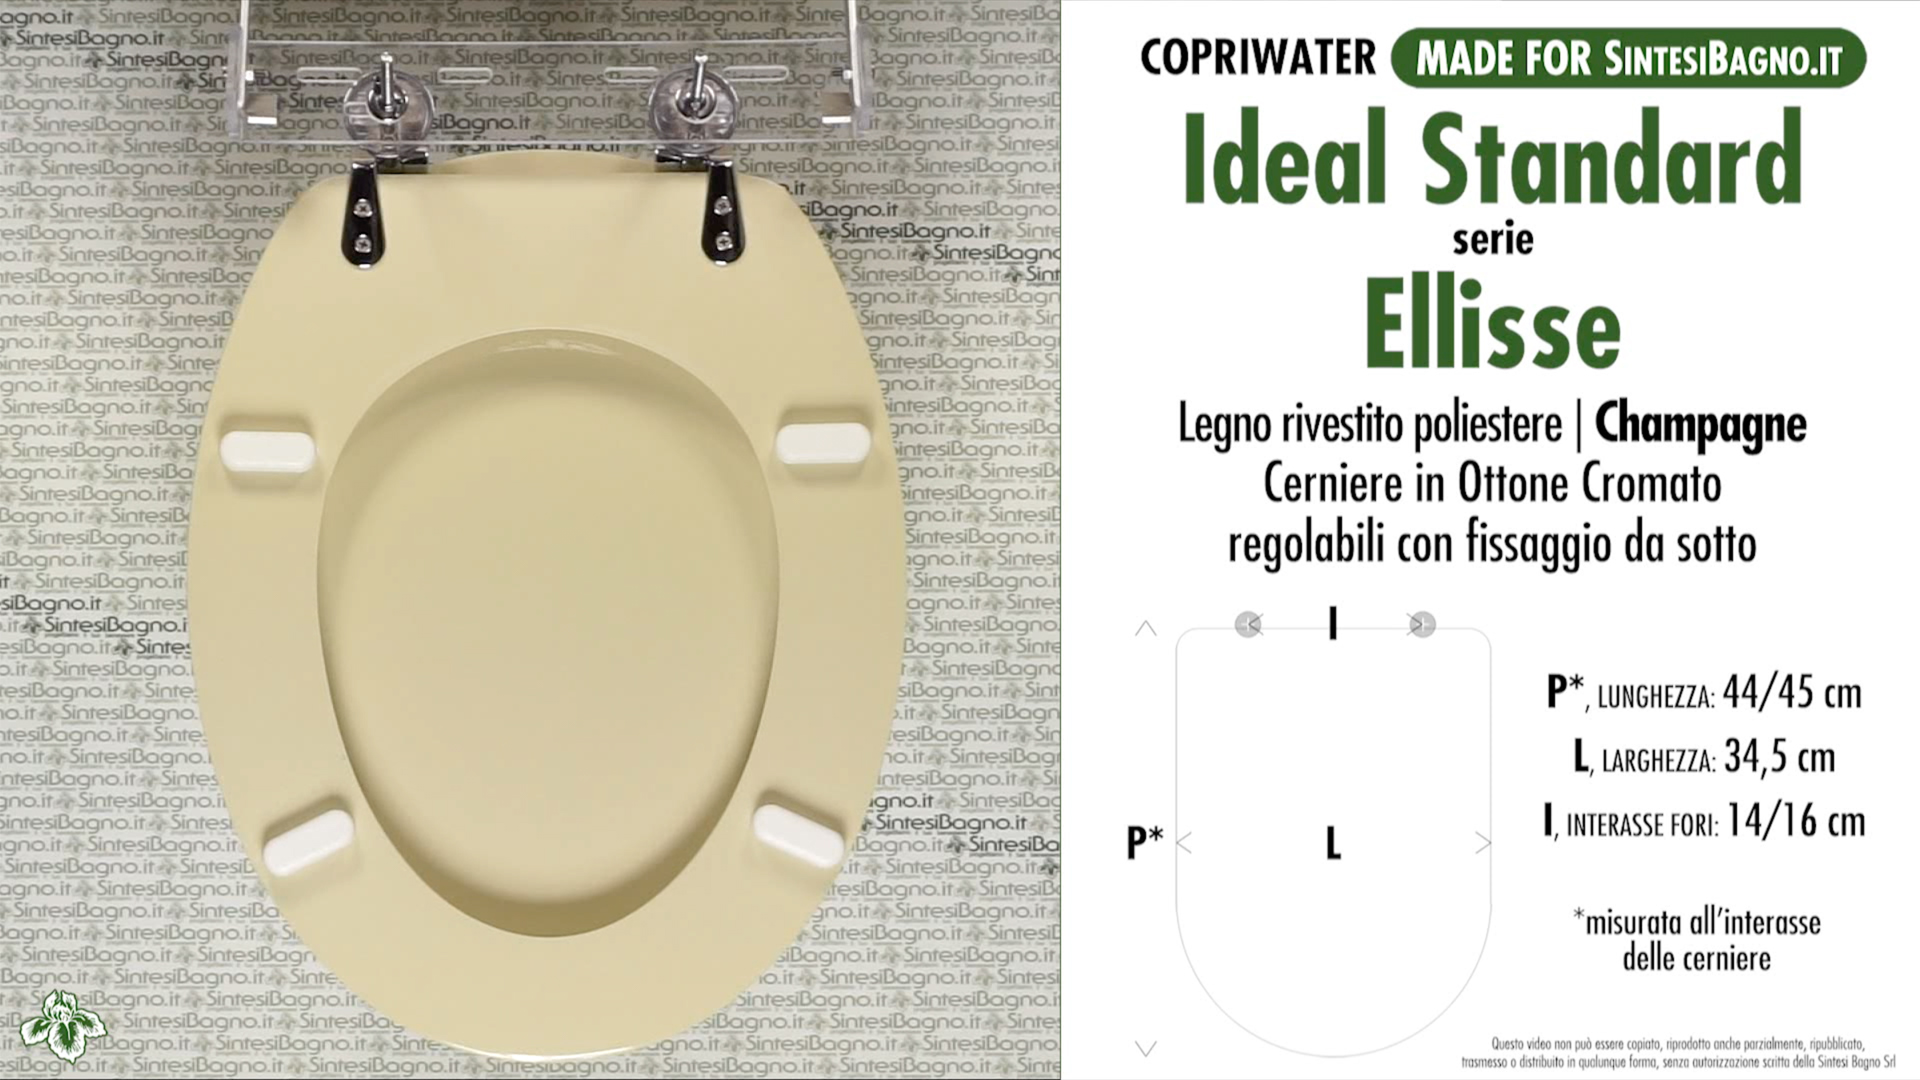 Schede tecniche misure copriwater ideal standard serie ellisse for Ideal standard cantica copriwater